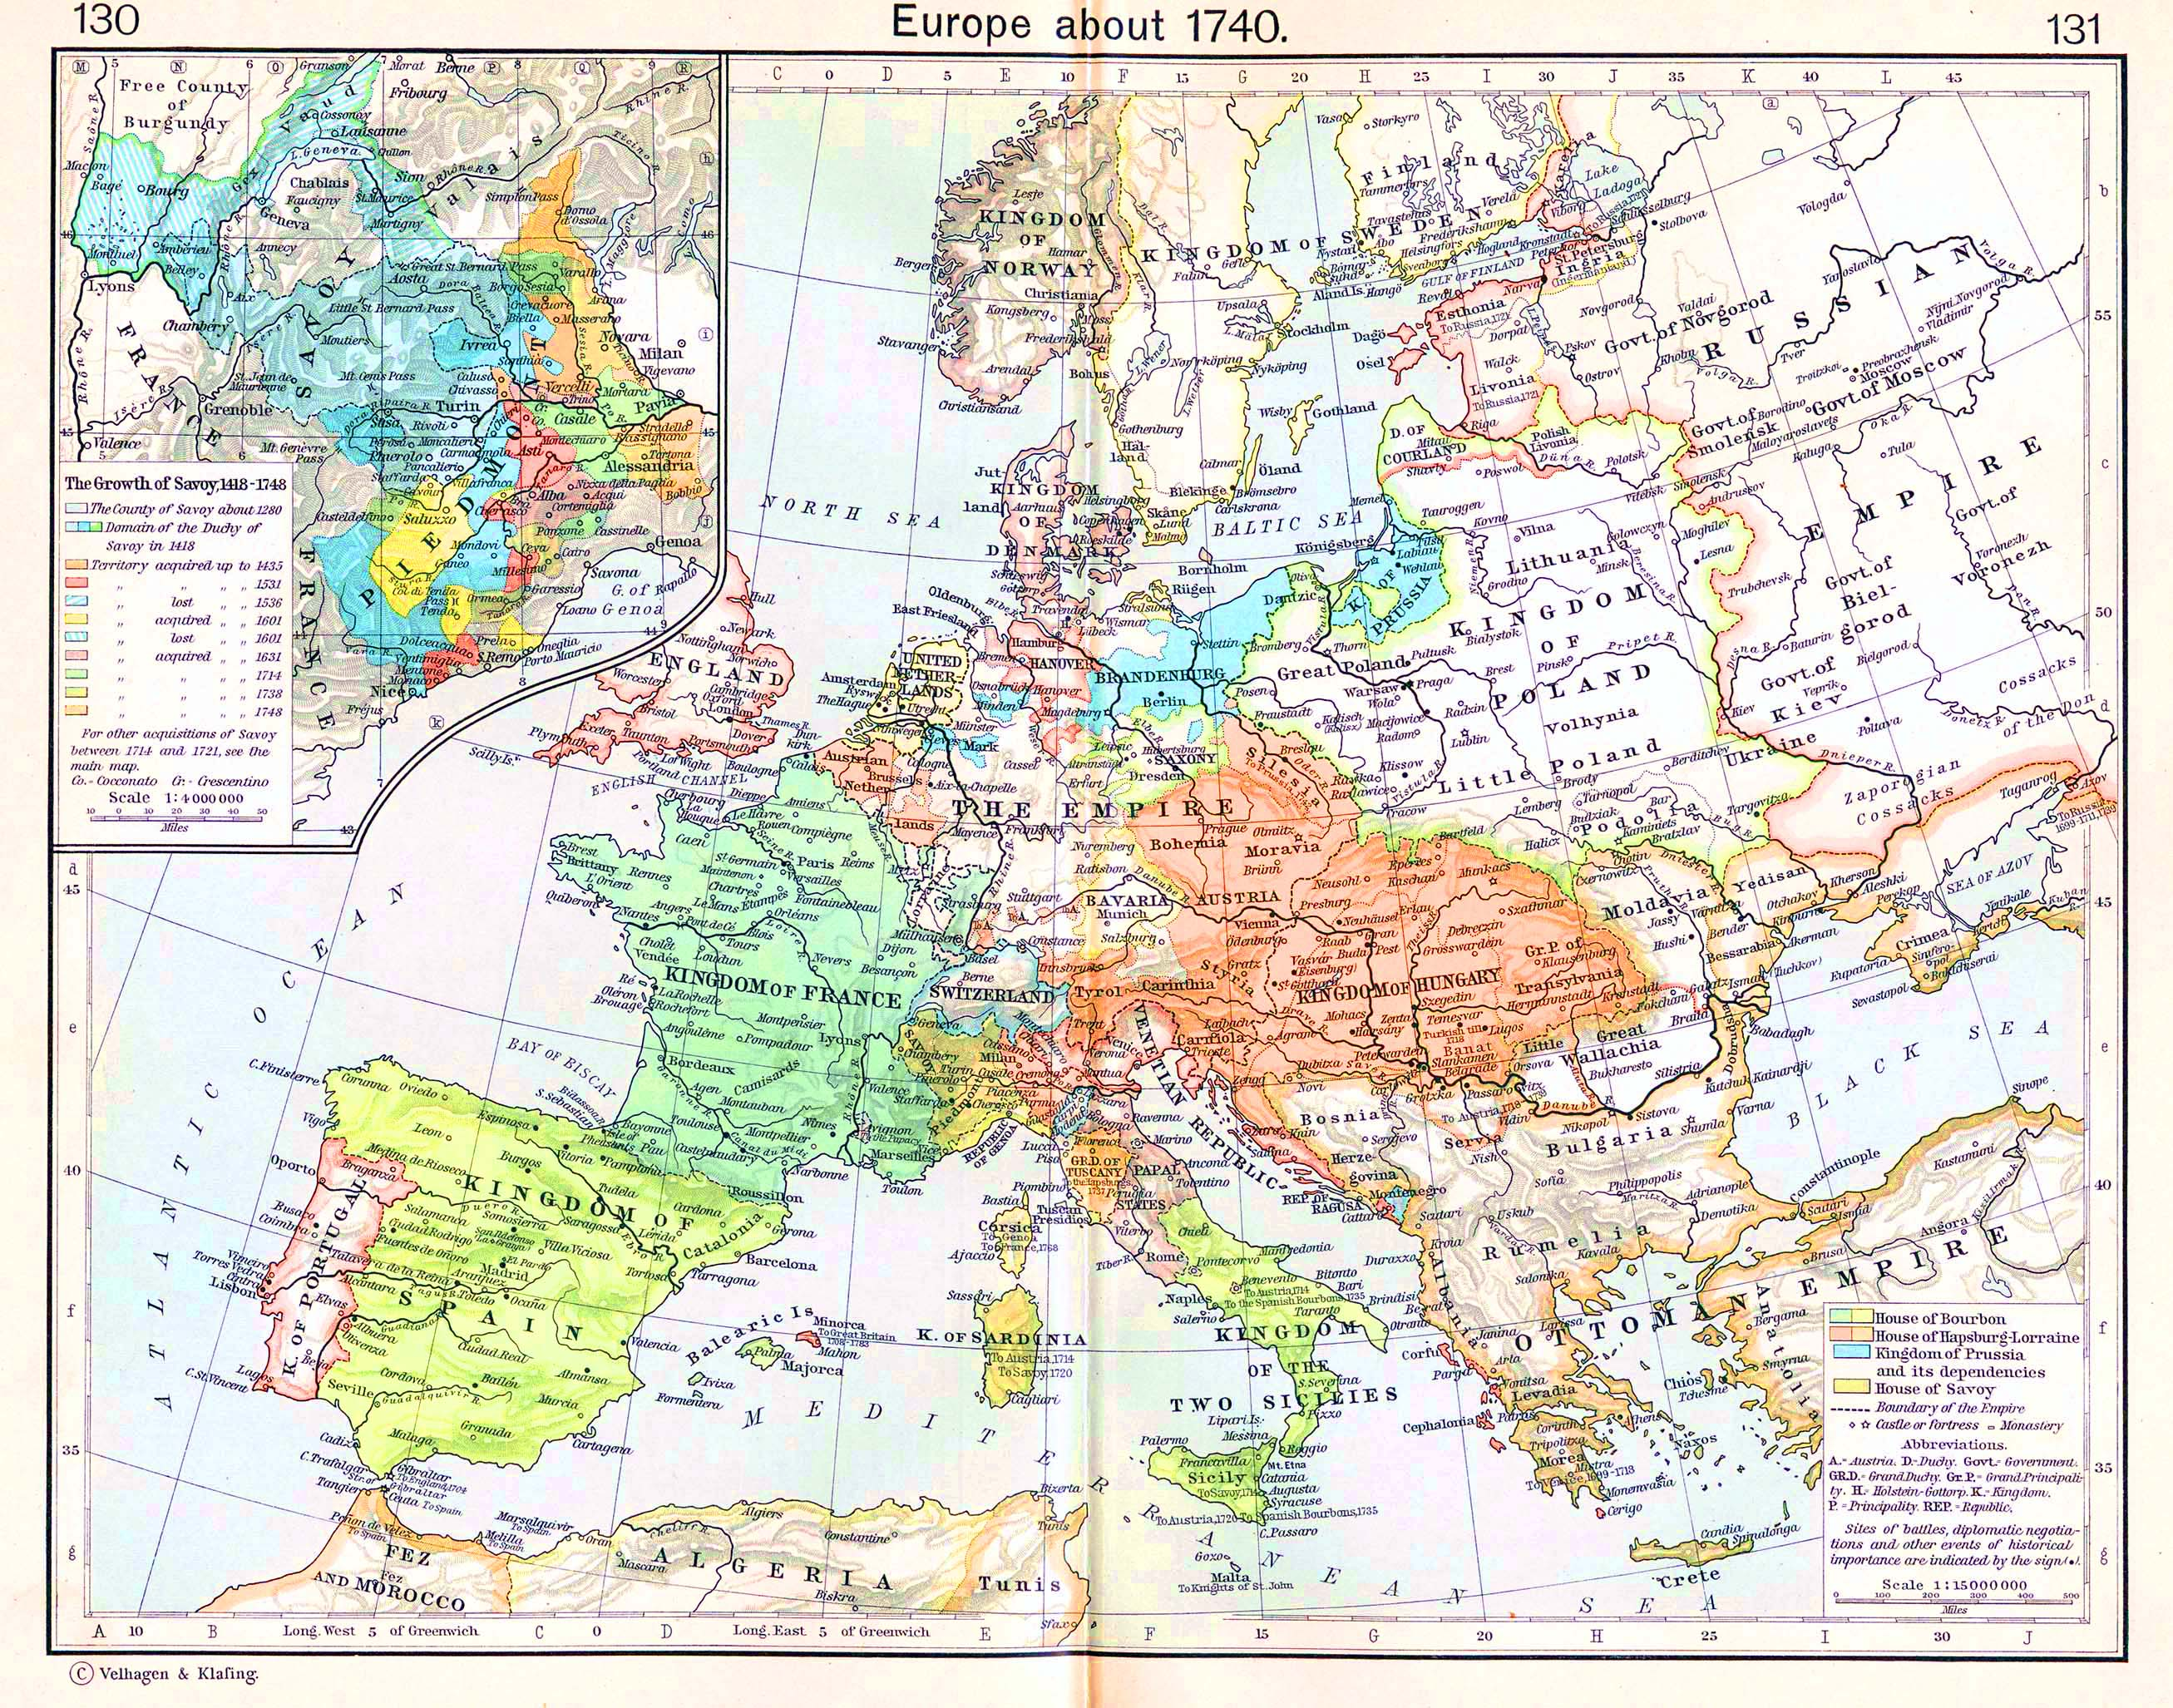 Map of Europe about 1740